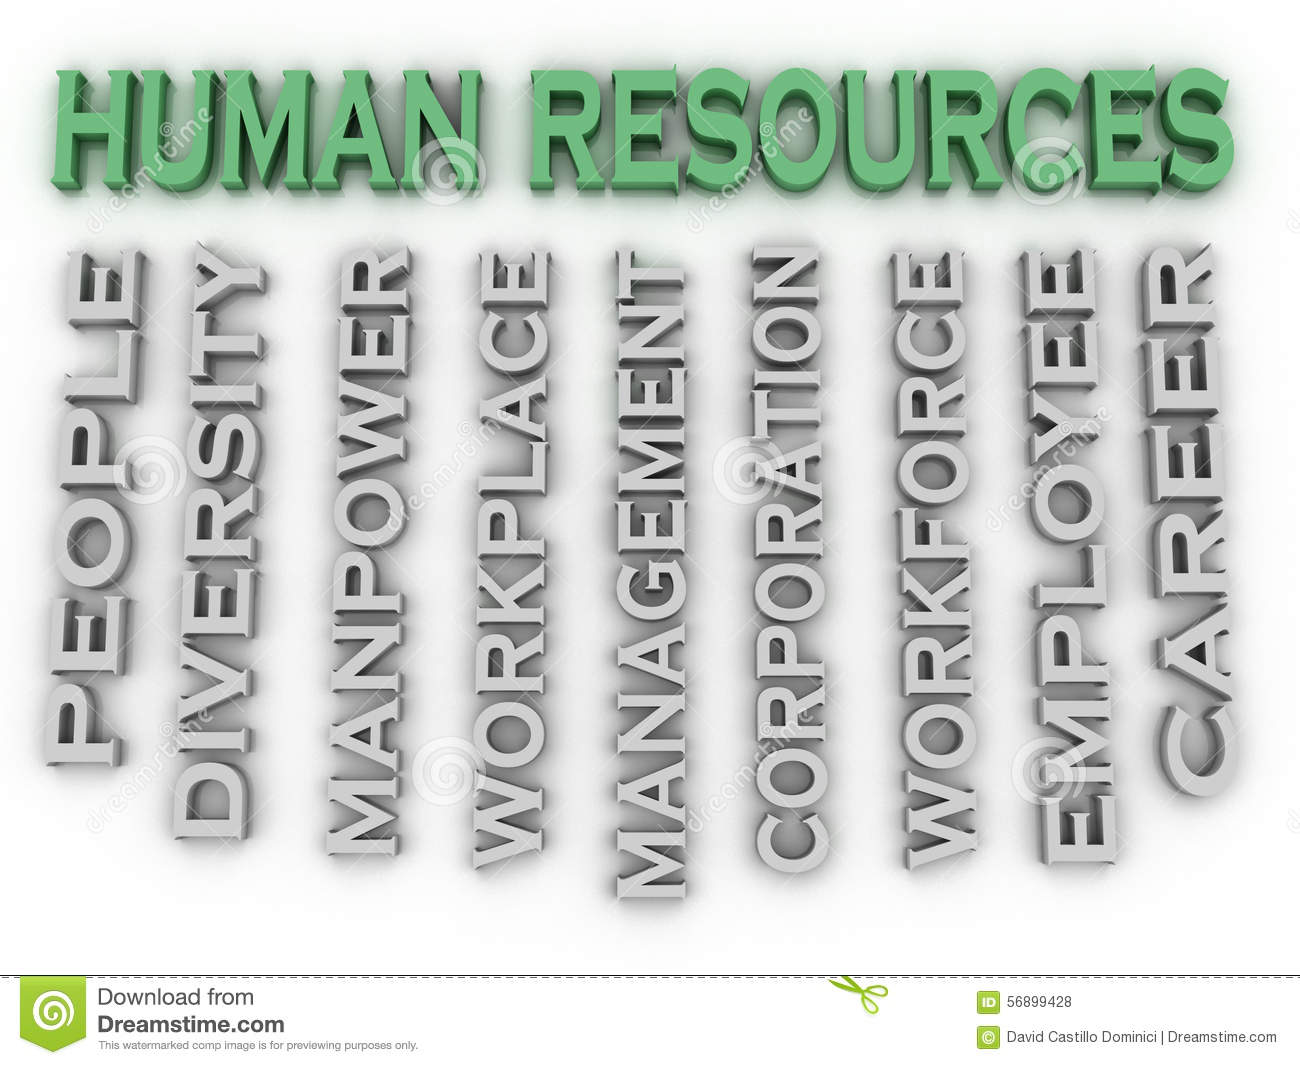 human resource issues in the gas Read chapter 1 human resource issues for the navy and marine corps: technology for the united states navy and marine corps, 2000-2035 becoming a 21st-cent.